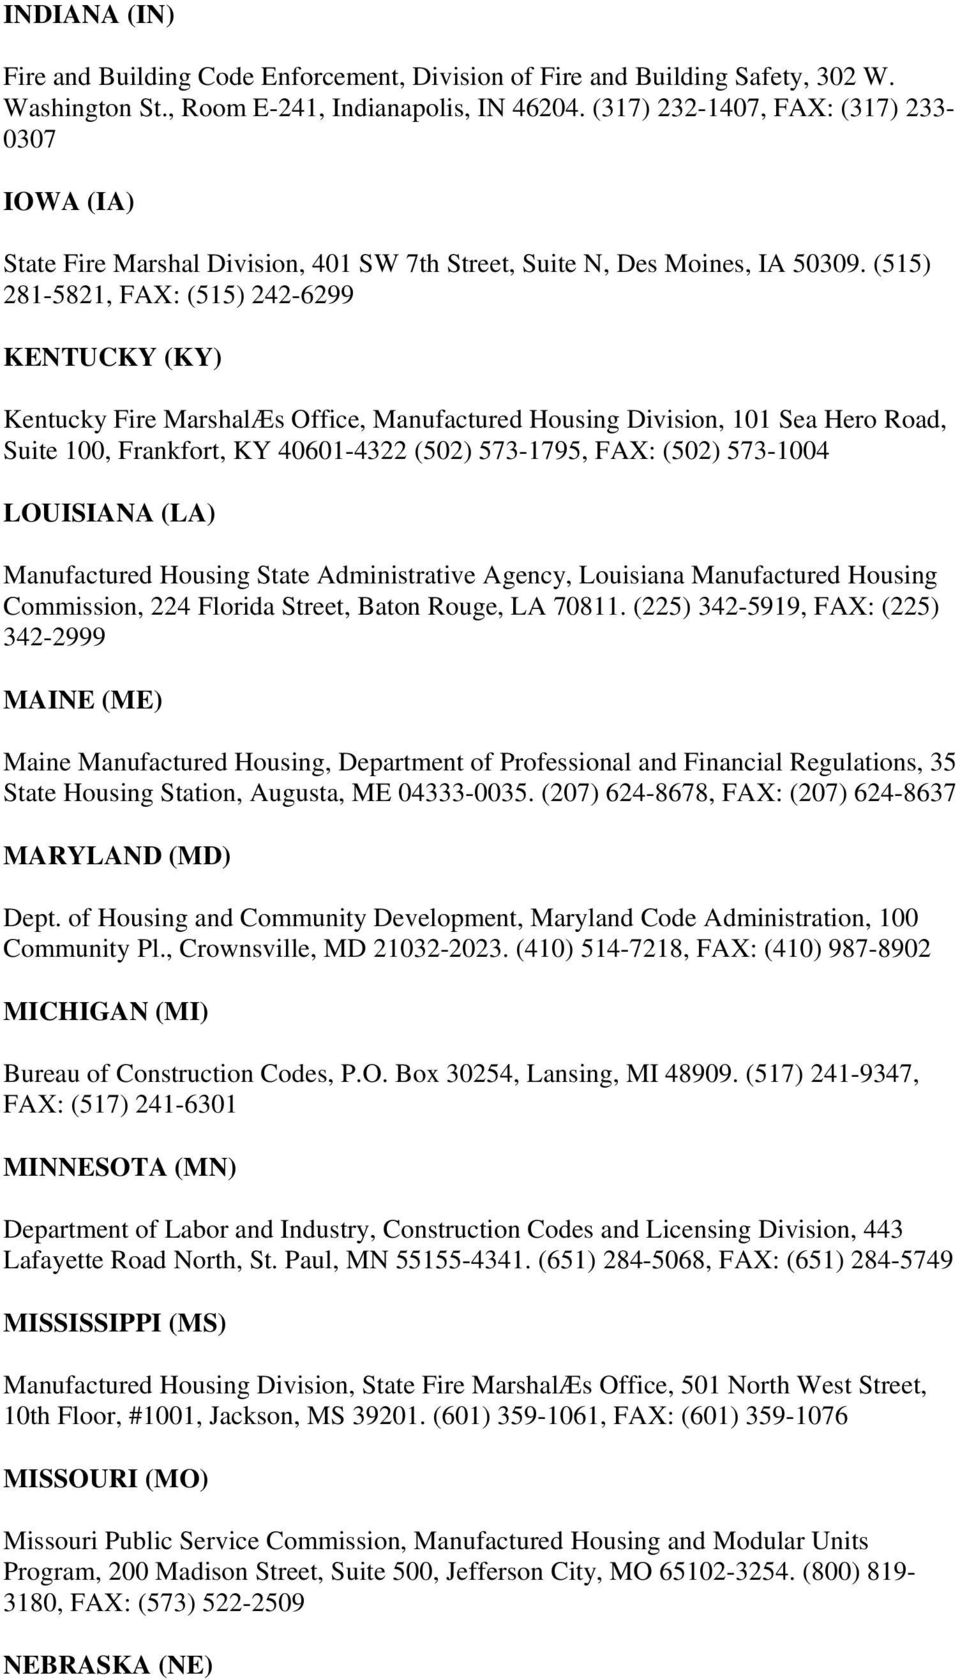 (515) 281-5821, FAX: (515) 242-6299 KENTUCKY (KY) Kentucky Fire MarshalÆs Office, Manufactured Housing Division, 101 Sea Hero Road, Suite 100, Frankfort, KY 40601-4322 (502) 573-1795, FAX: (502)